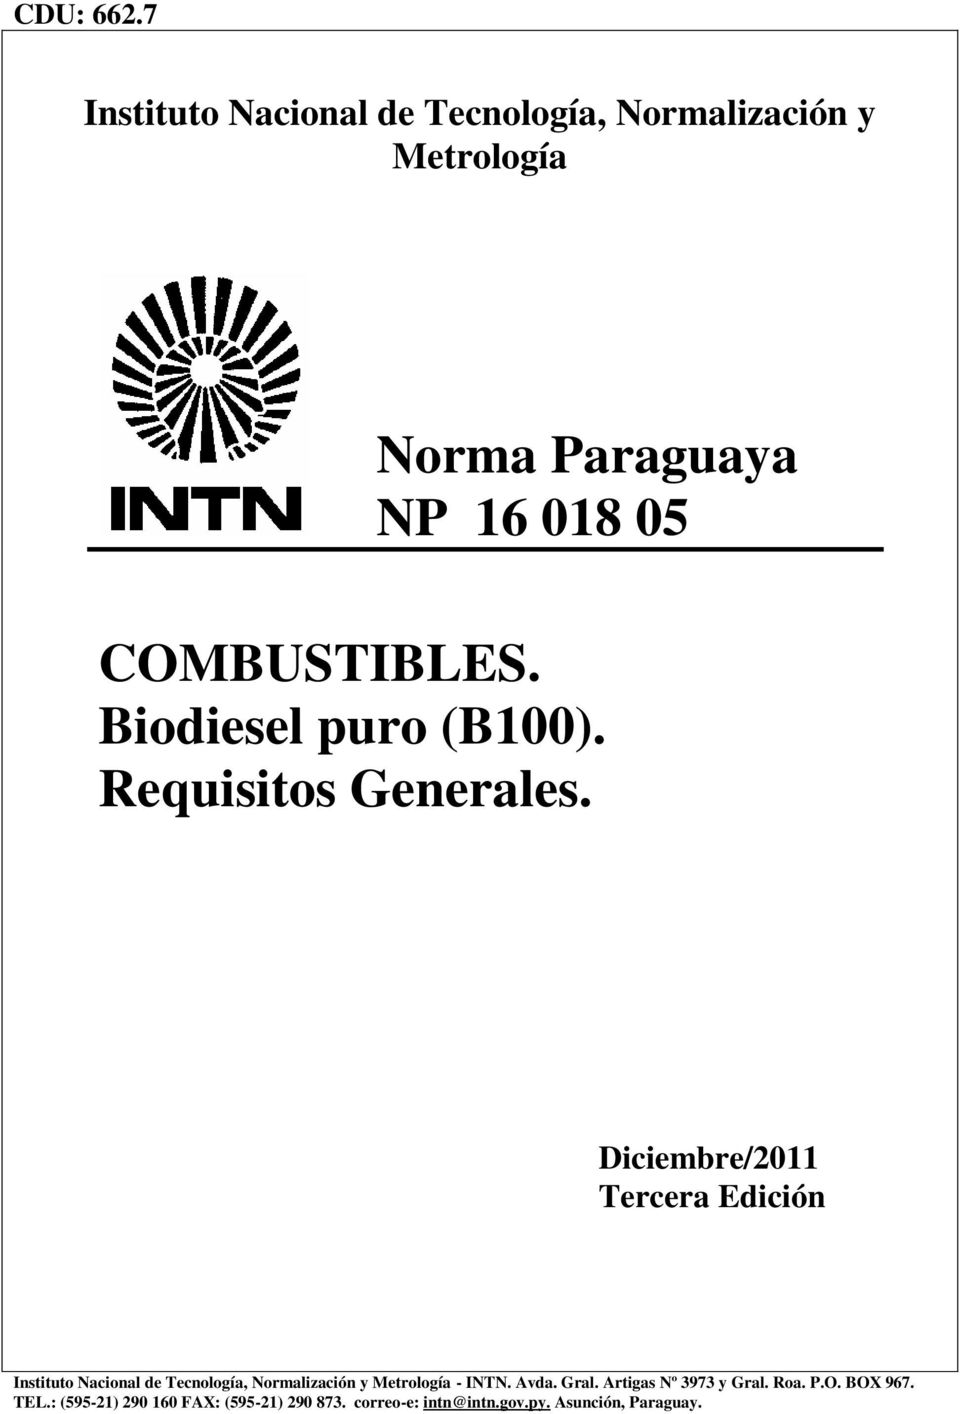 COMBUSTIBLES. Biodiesel puro (B100). Requisitos Generales.